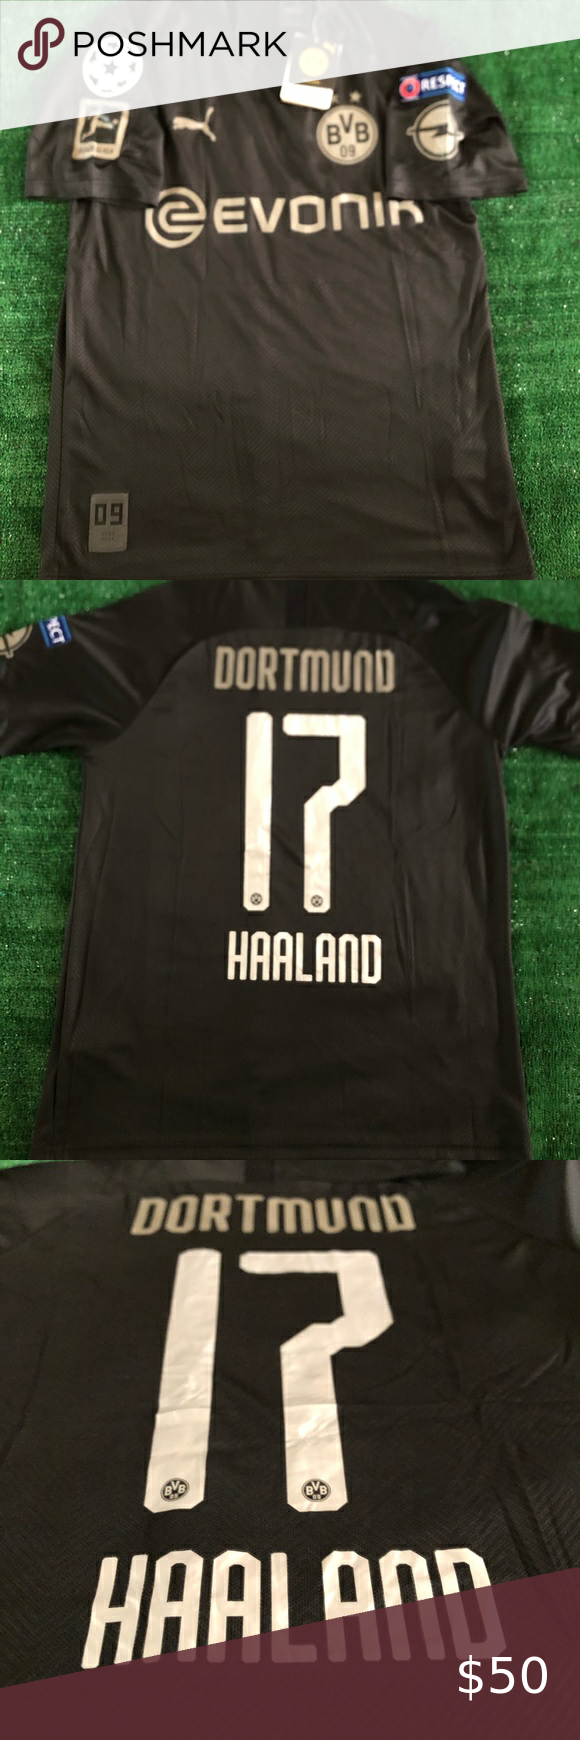 Borussia Dortmund Haaland 110th Anniversary Jersey Brand New With Tags Borussia Dortmund 110th Anniversary Haaland 1 In 2020 Clothes Design Puma Shirts Fashion Tips